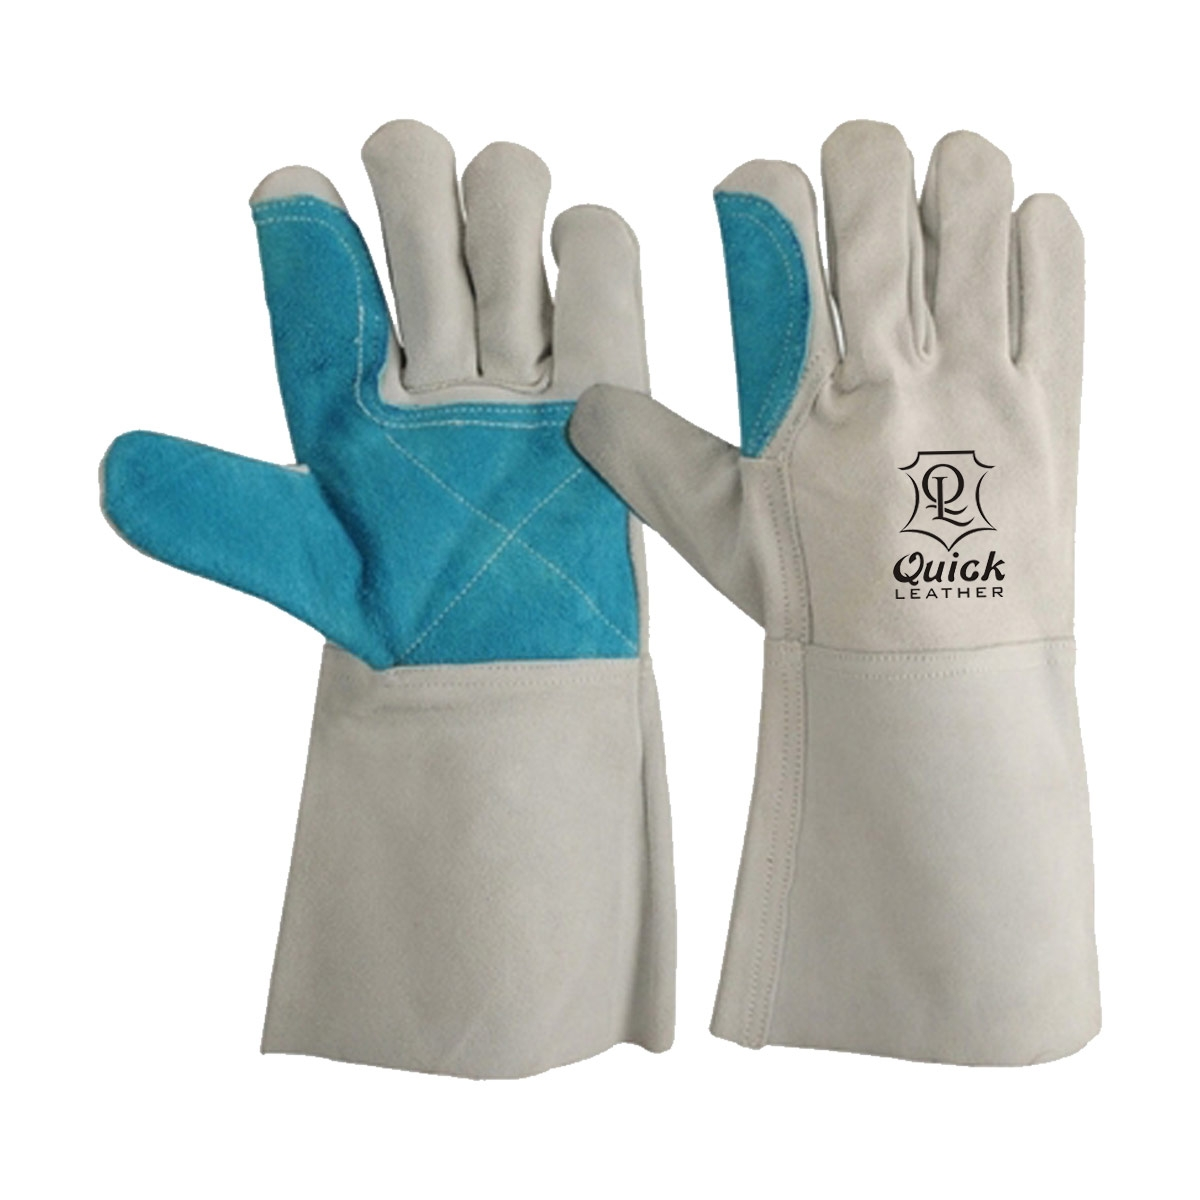 Welding gloves are excellent for use when welding in dry and oily conditions. QL-217